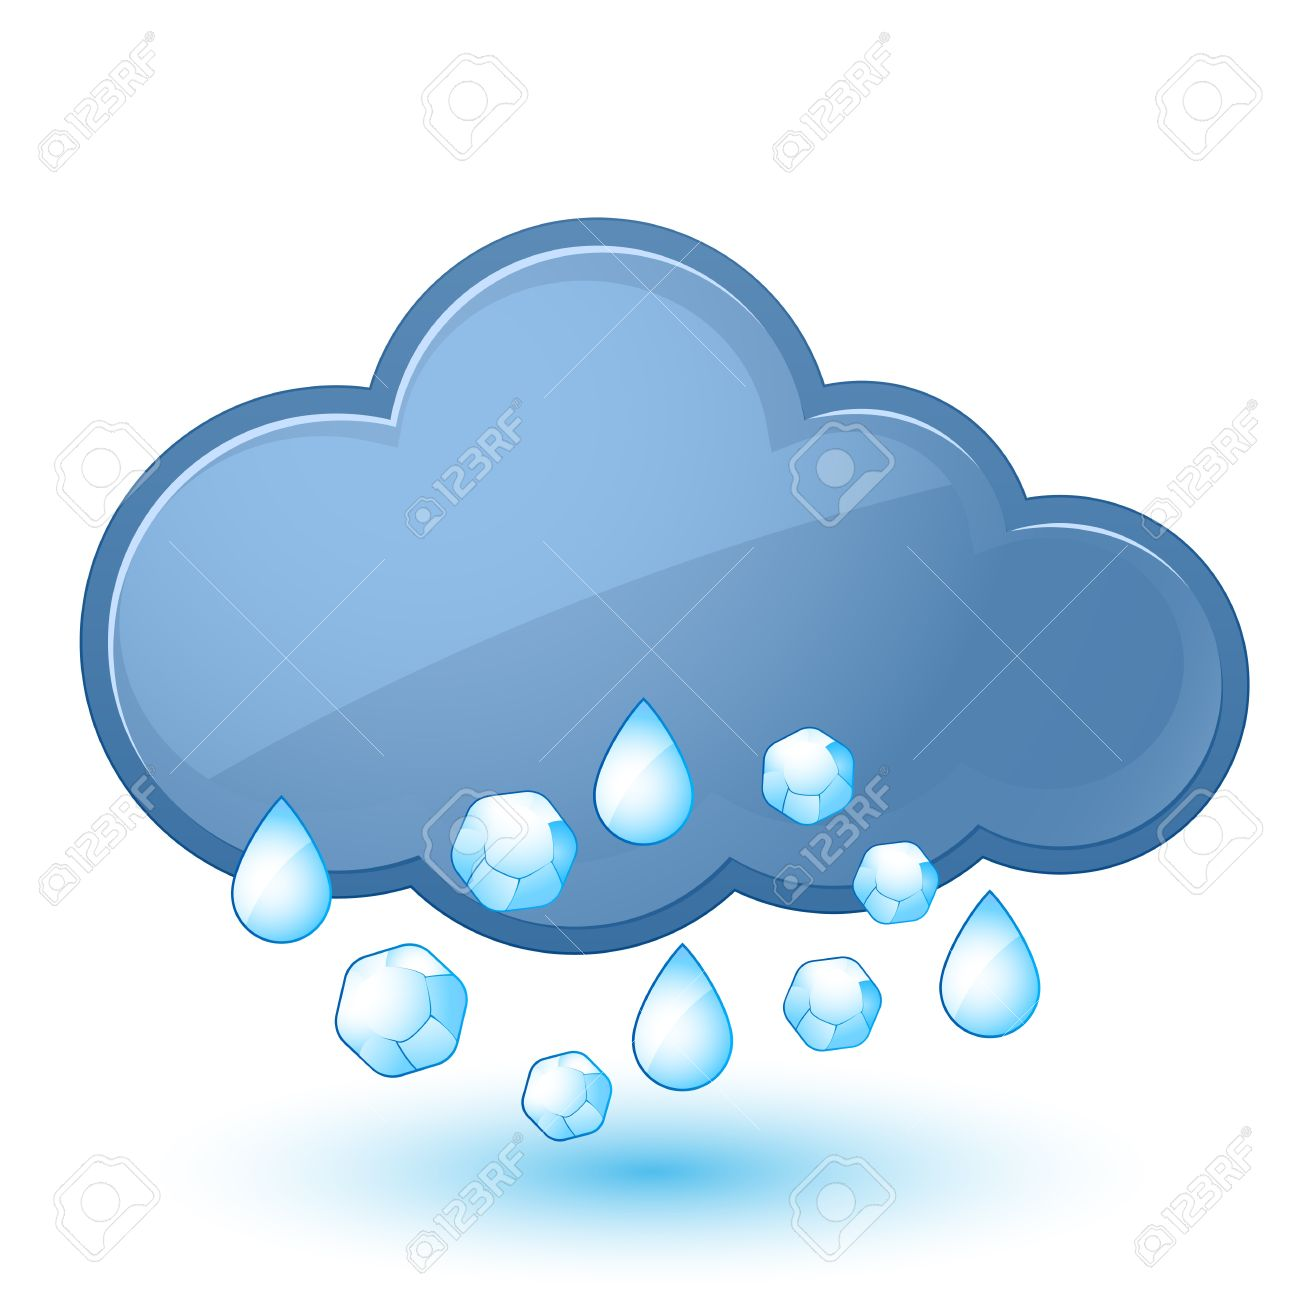 Hail cloud clipart.